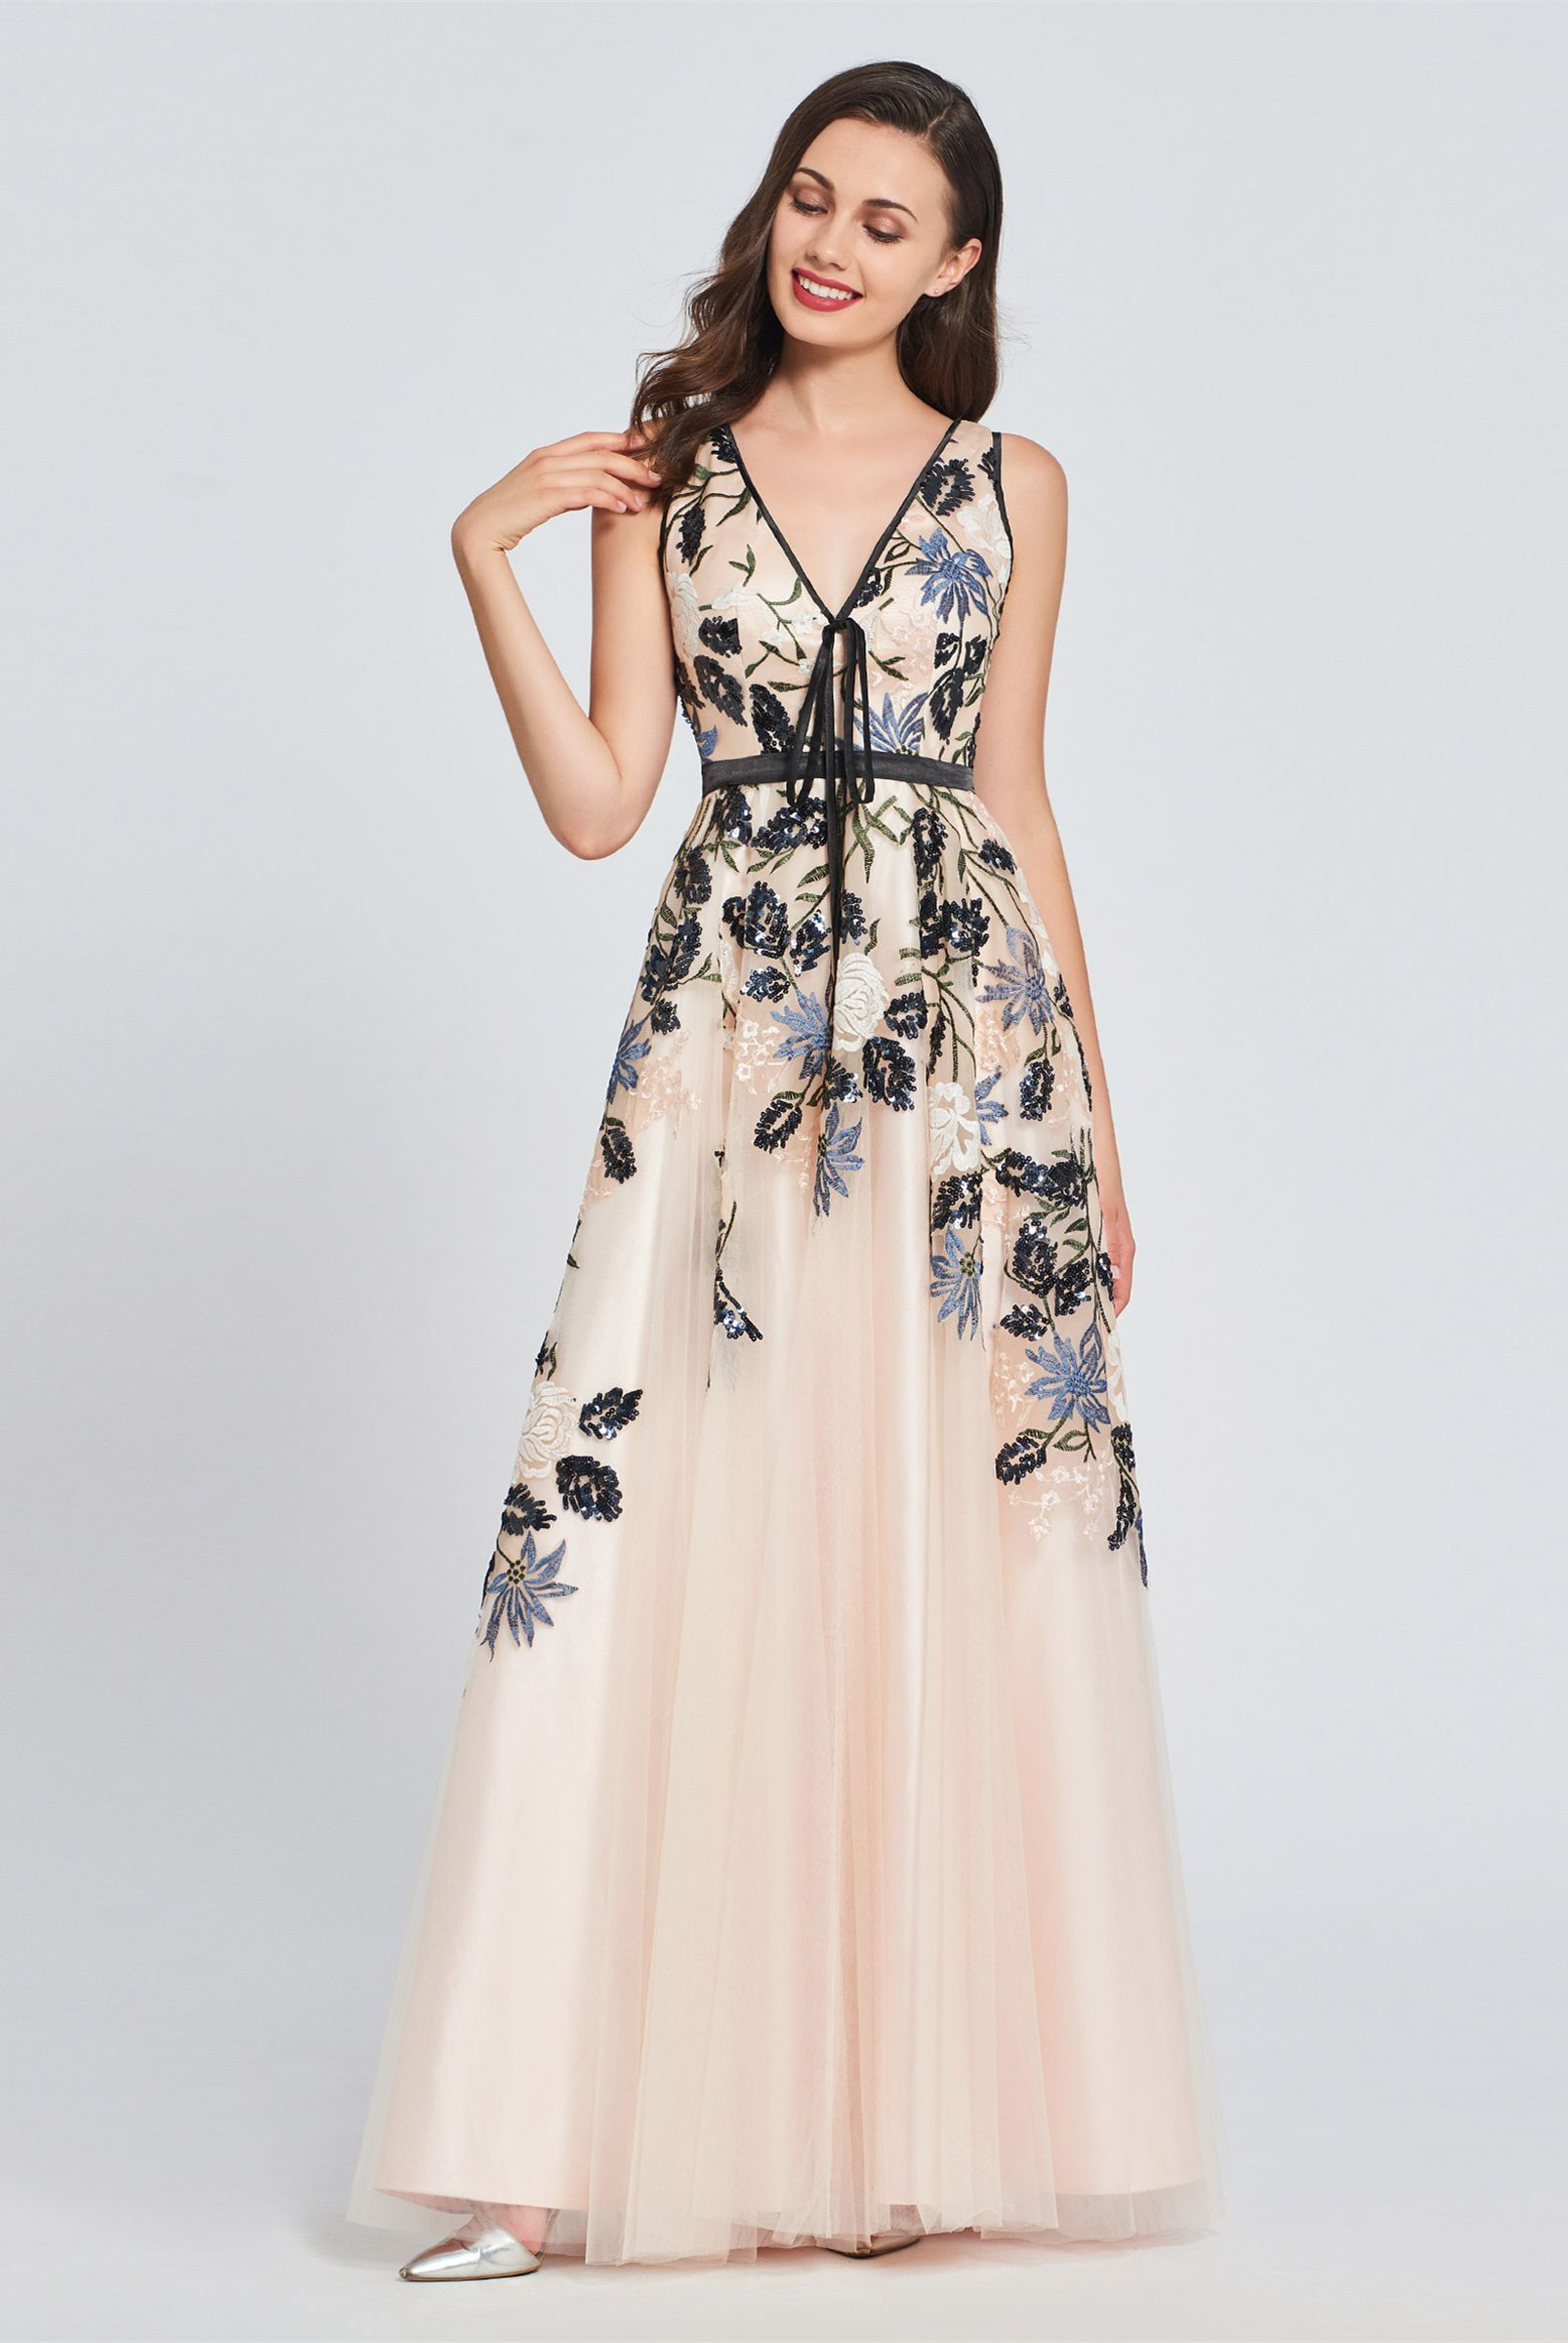 Aline vneck appliques embroidery prom dress in dresses